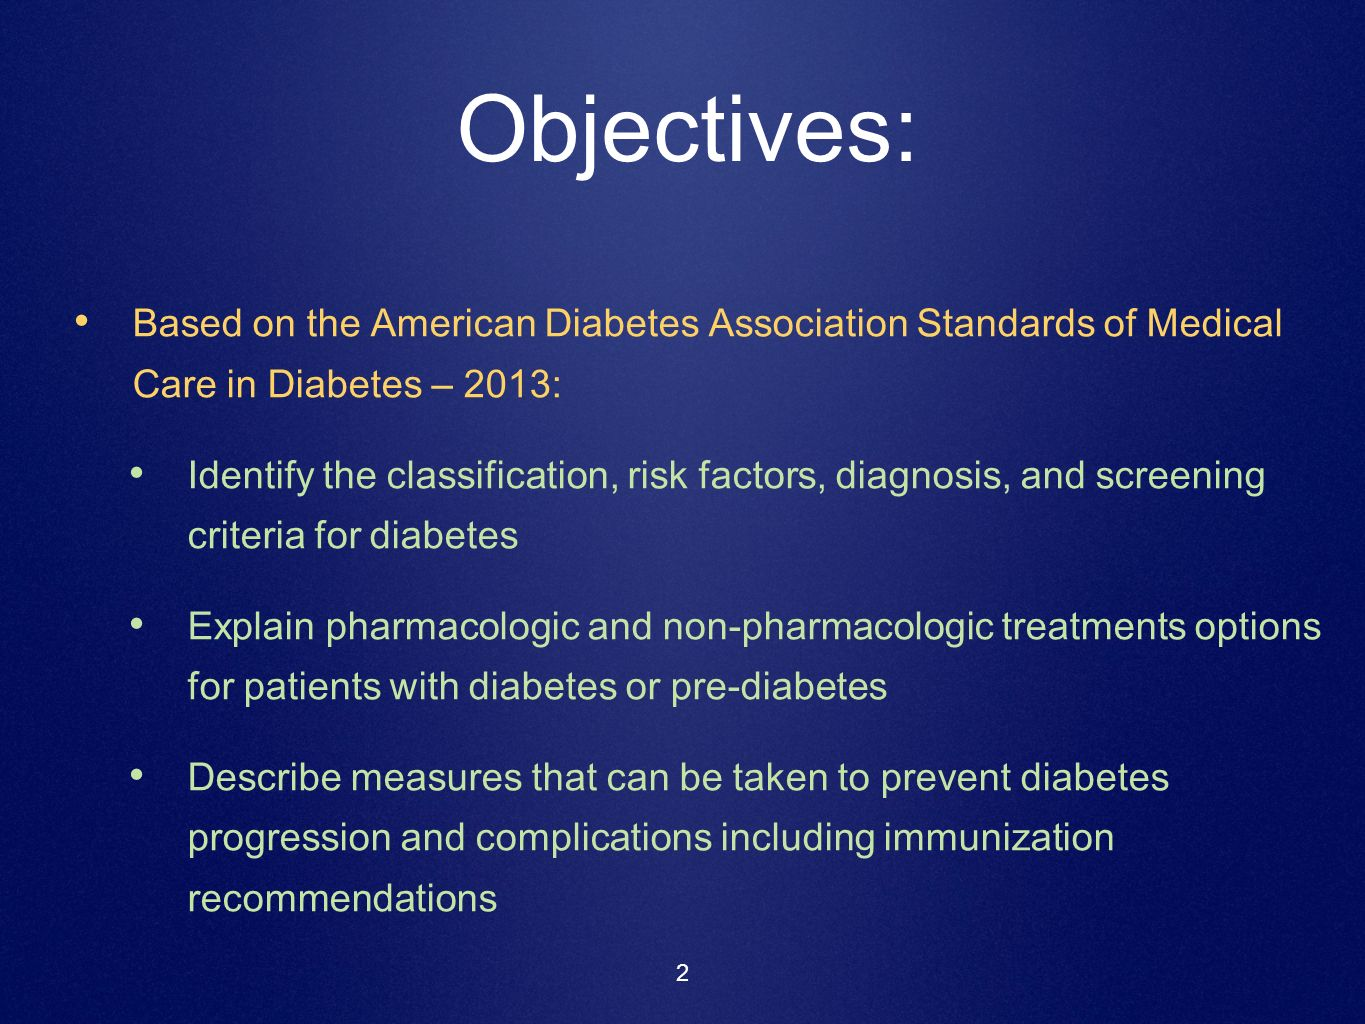 Objectives: Based on the American Diabetes Association Standards of Medical Care in Diabetes – 2013: